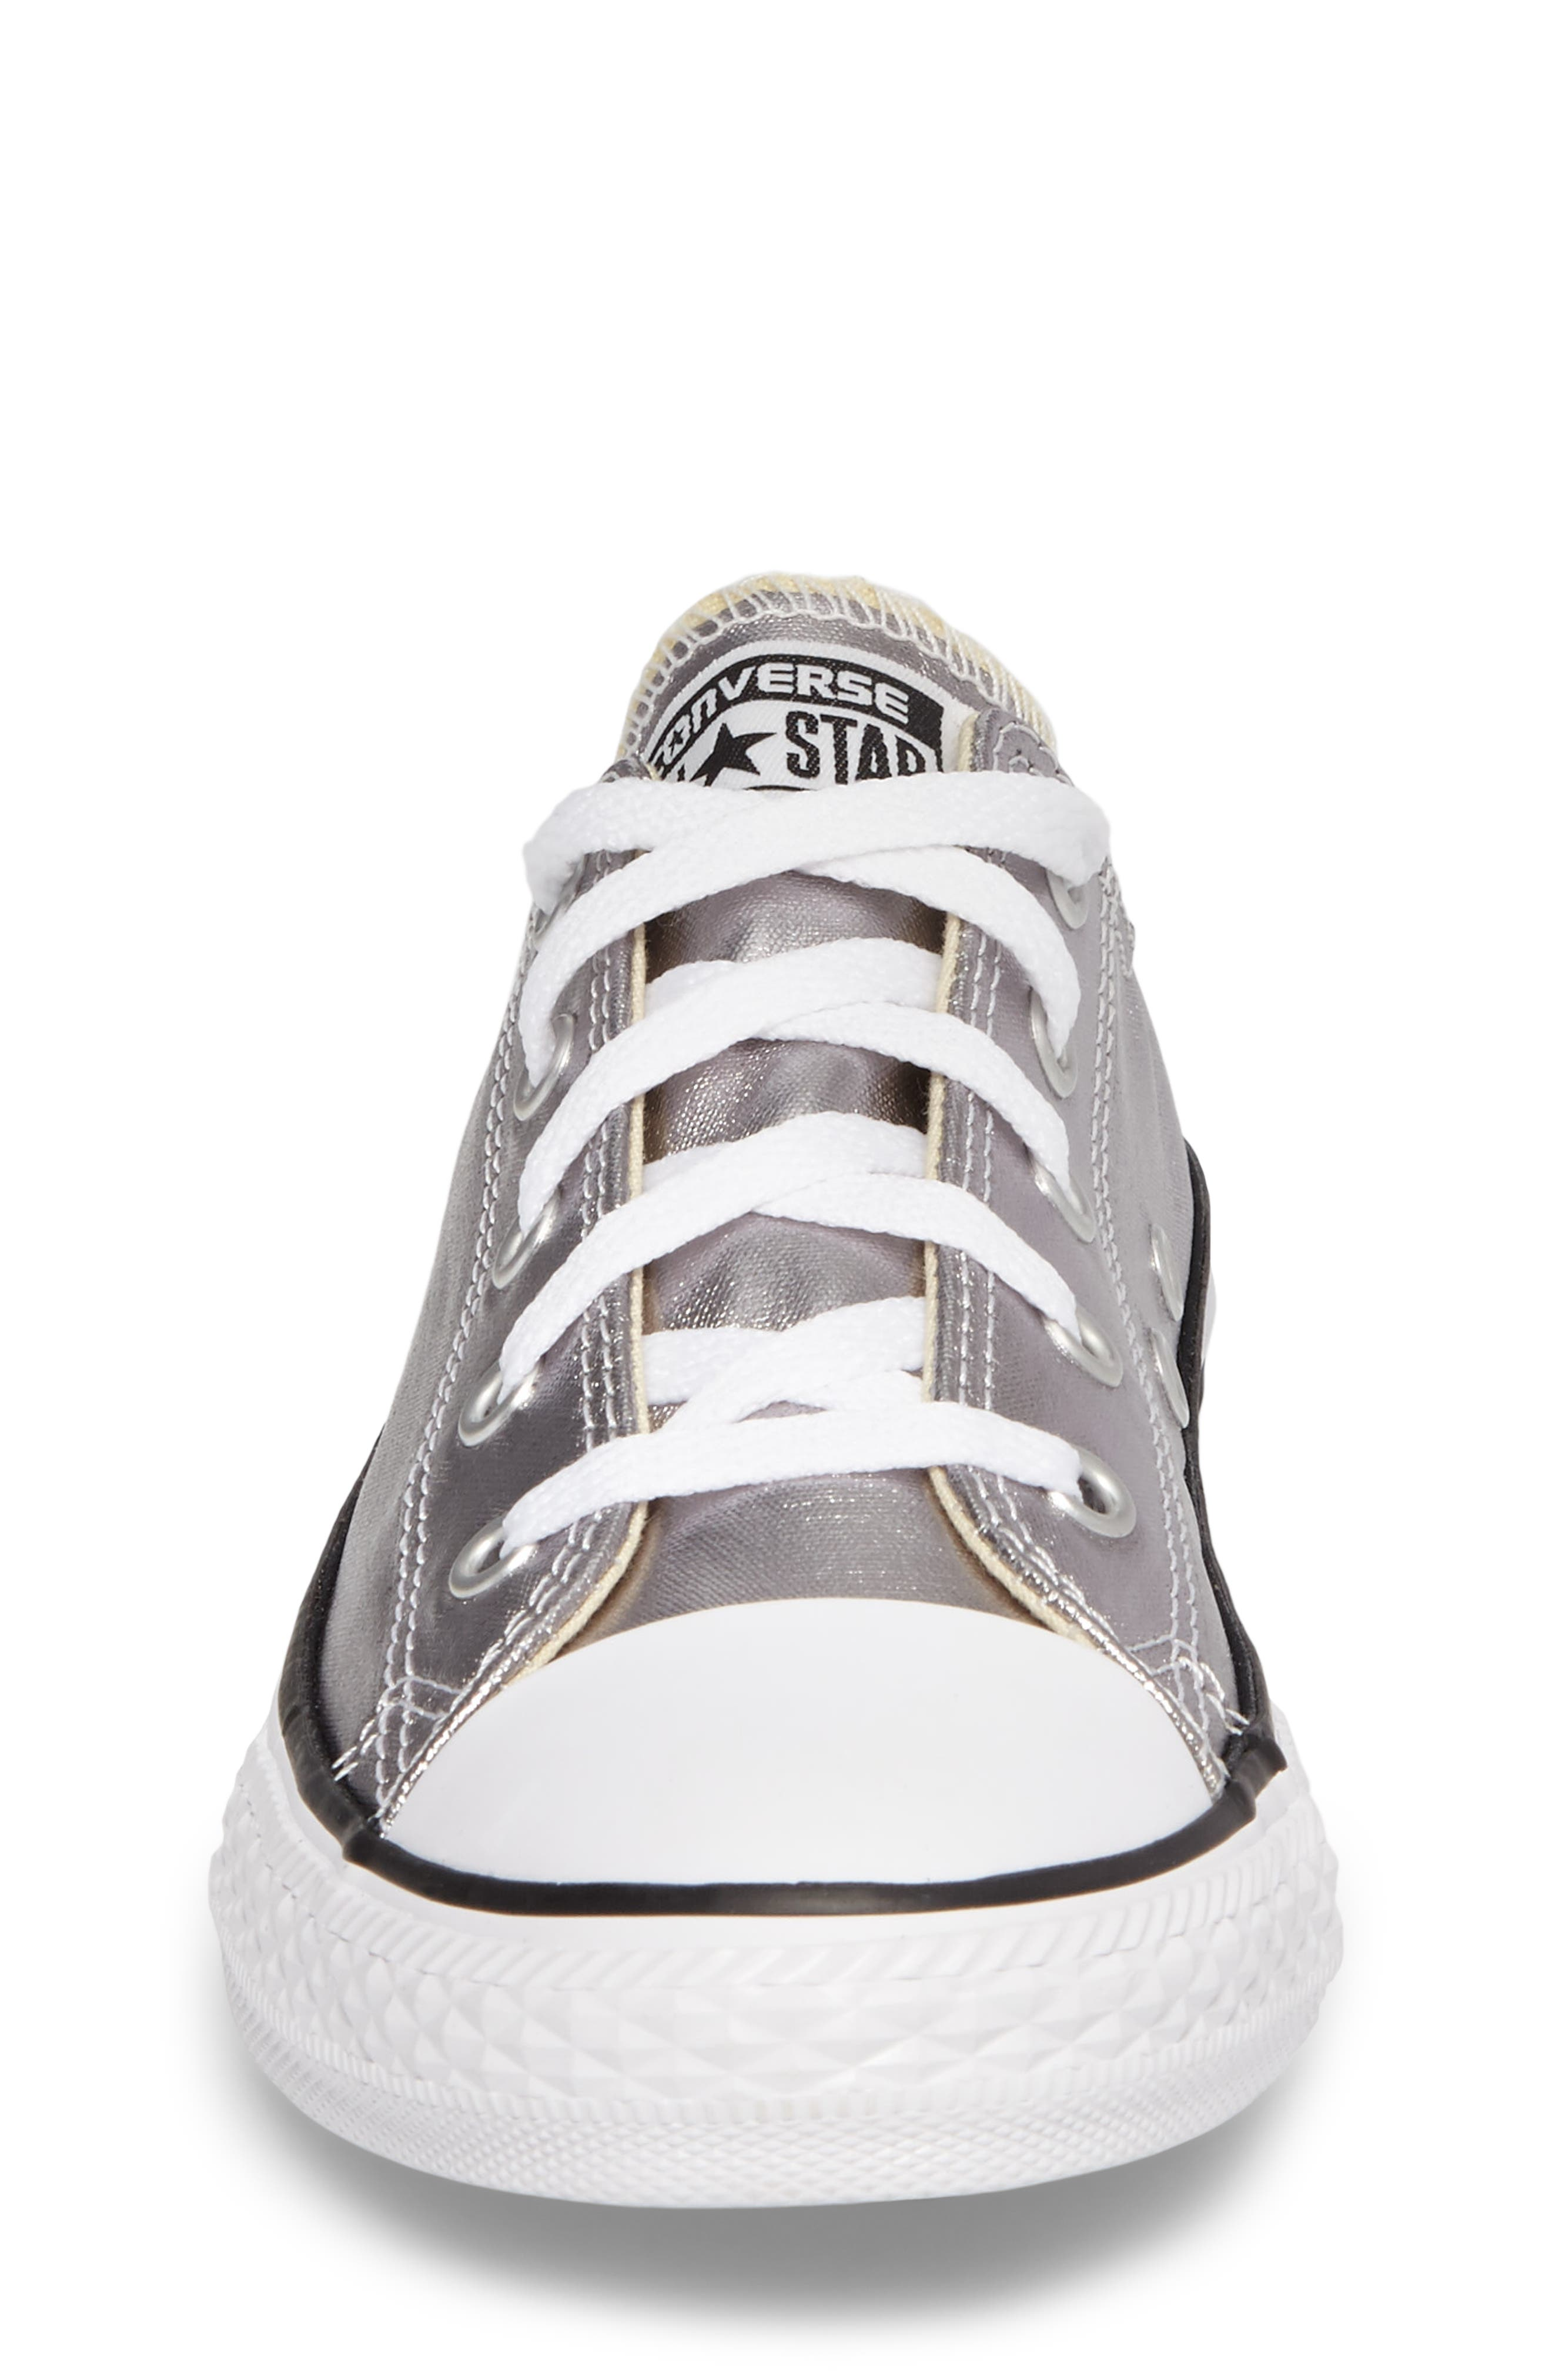 Chuck Taylor<sup>®</sup> All Star<sup>®</sup> Metallic Sneaker,                             Alternate thumbnail 4, color,                             040